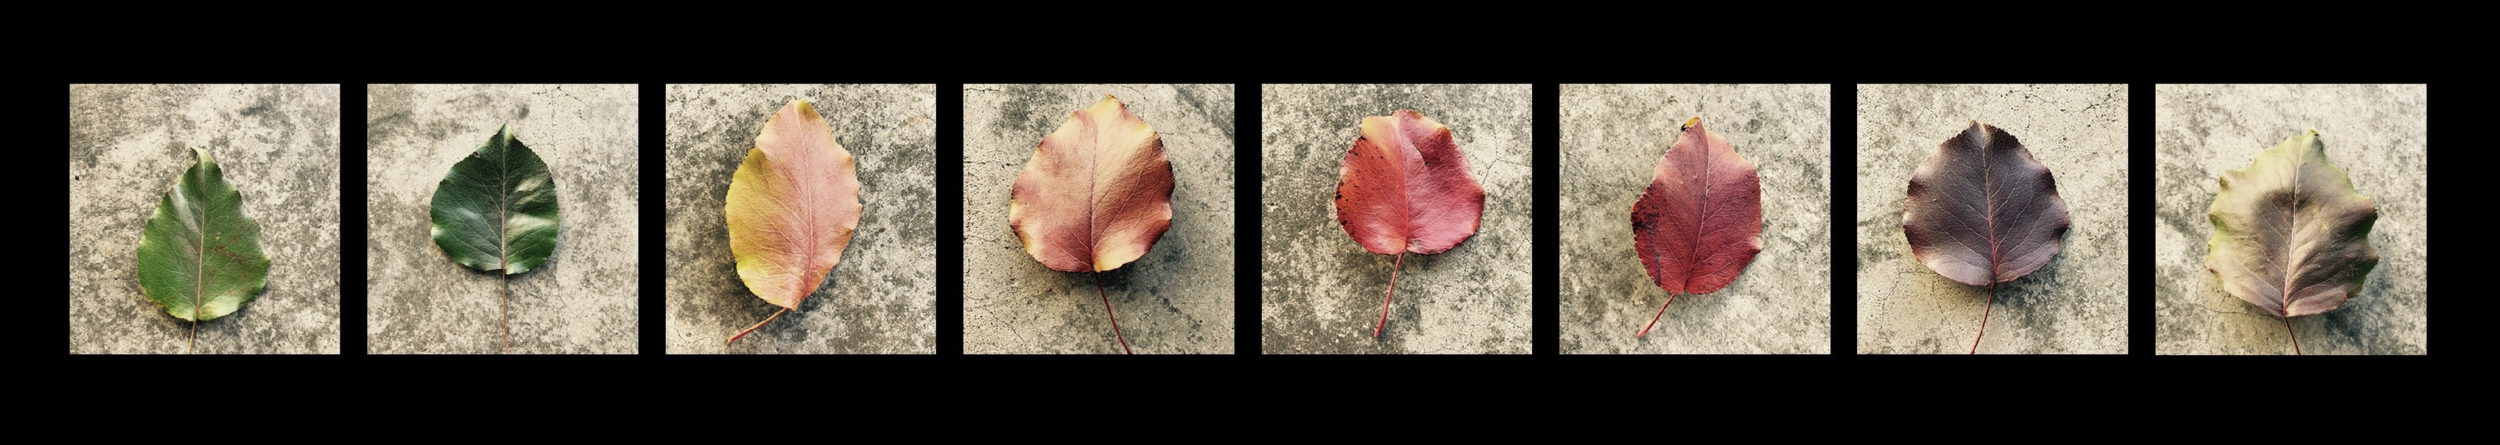 Leaves in the Process of Dying  . ©2019 Sean Walmsley